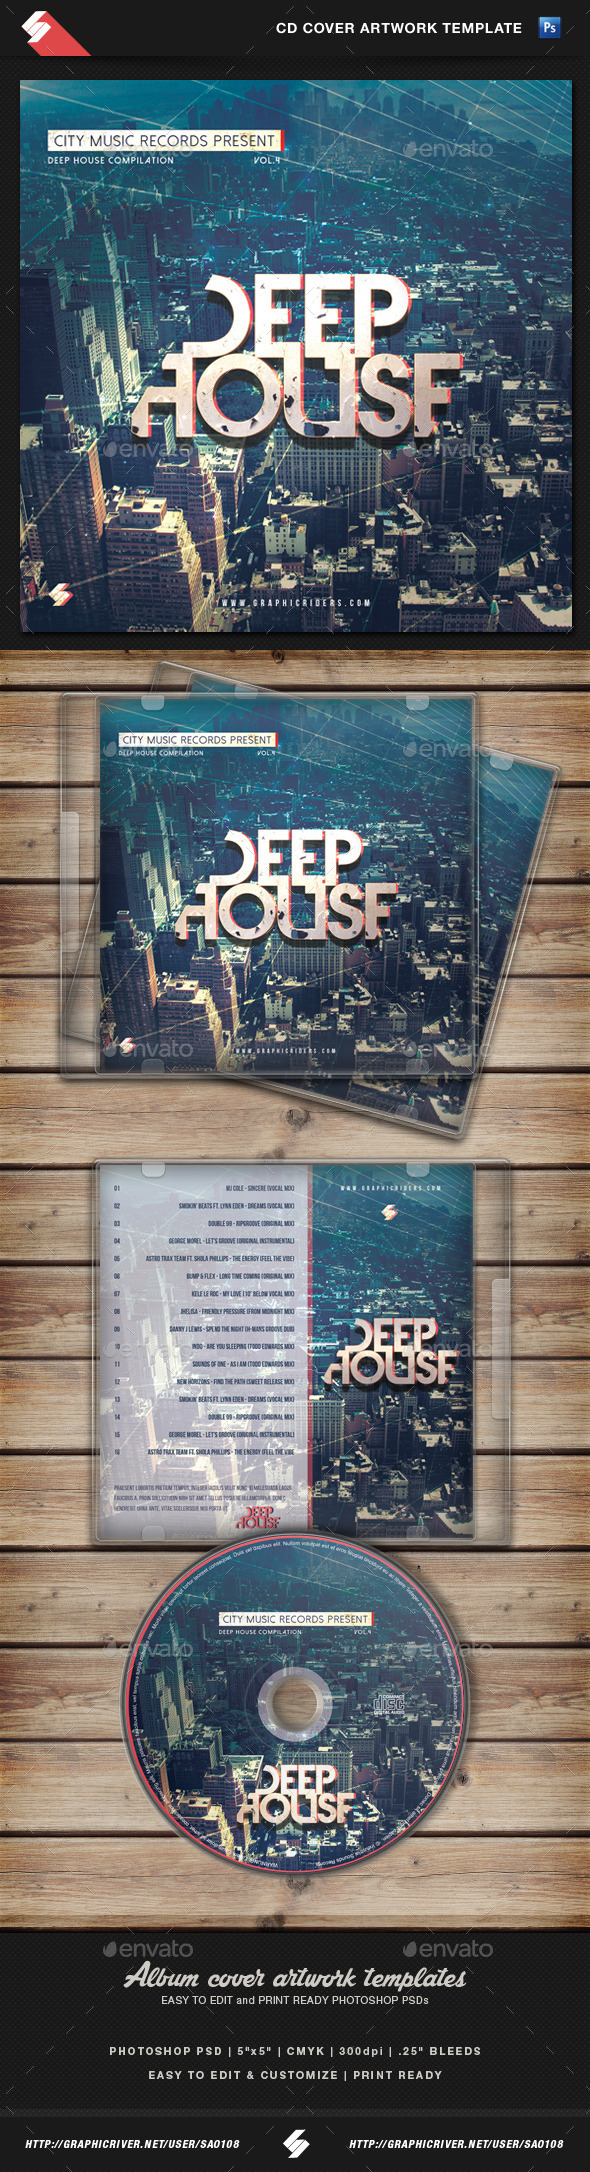 Deep house cd cover artwork template by sao108 for List of deep house music